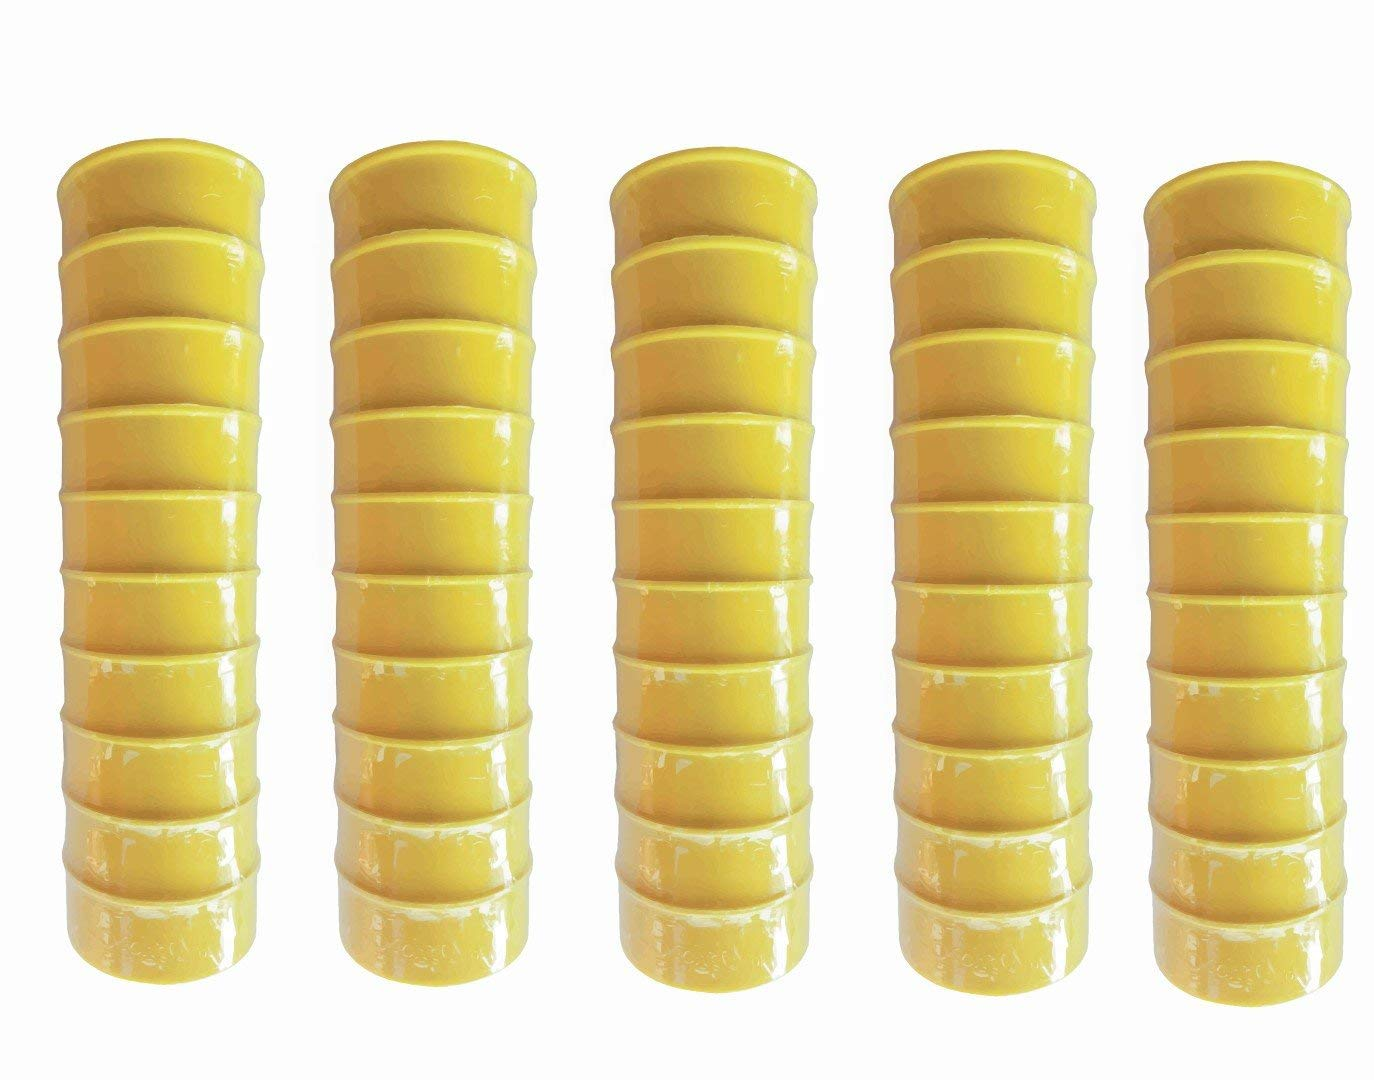 "FibroPro 50-pack Gas and Drinking Water Teflon/PTFE Tape, 1/2""x520"" Yellow"